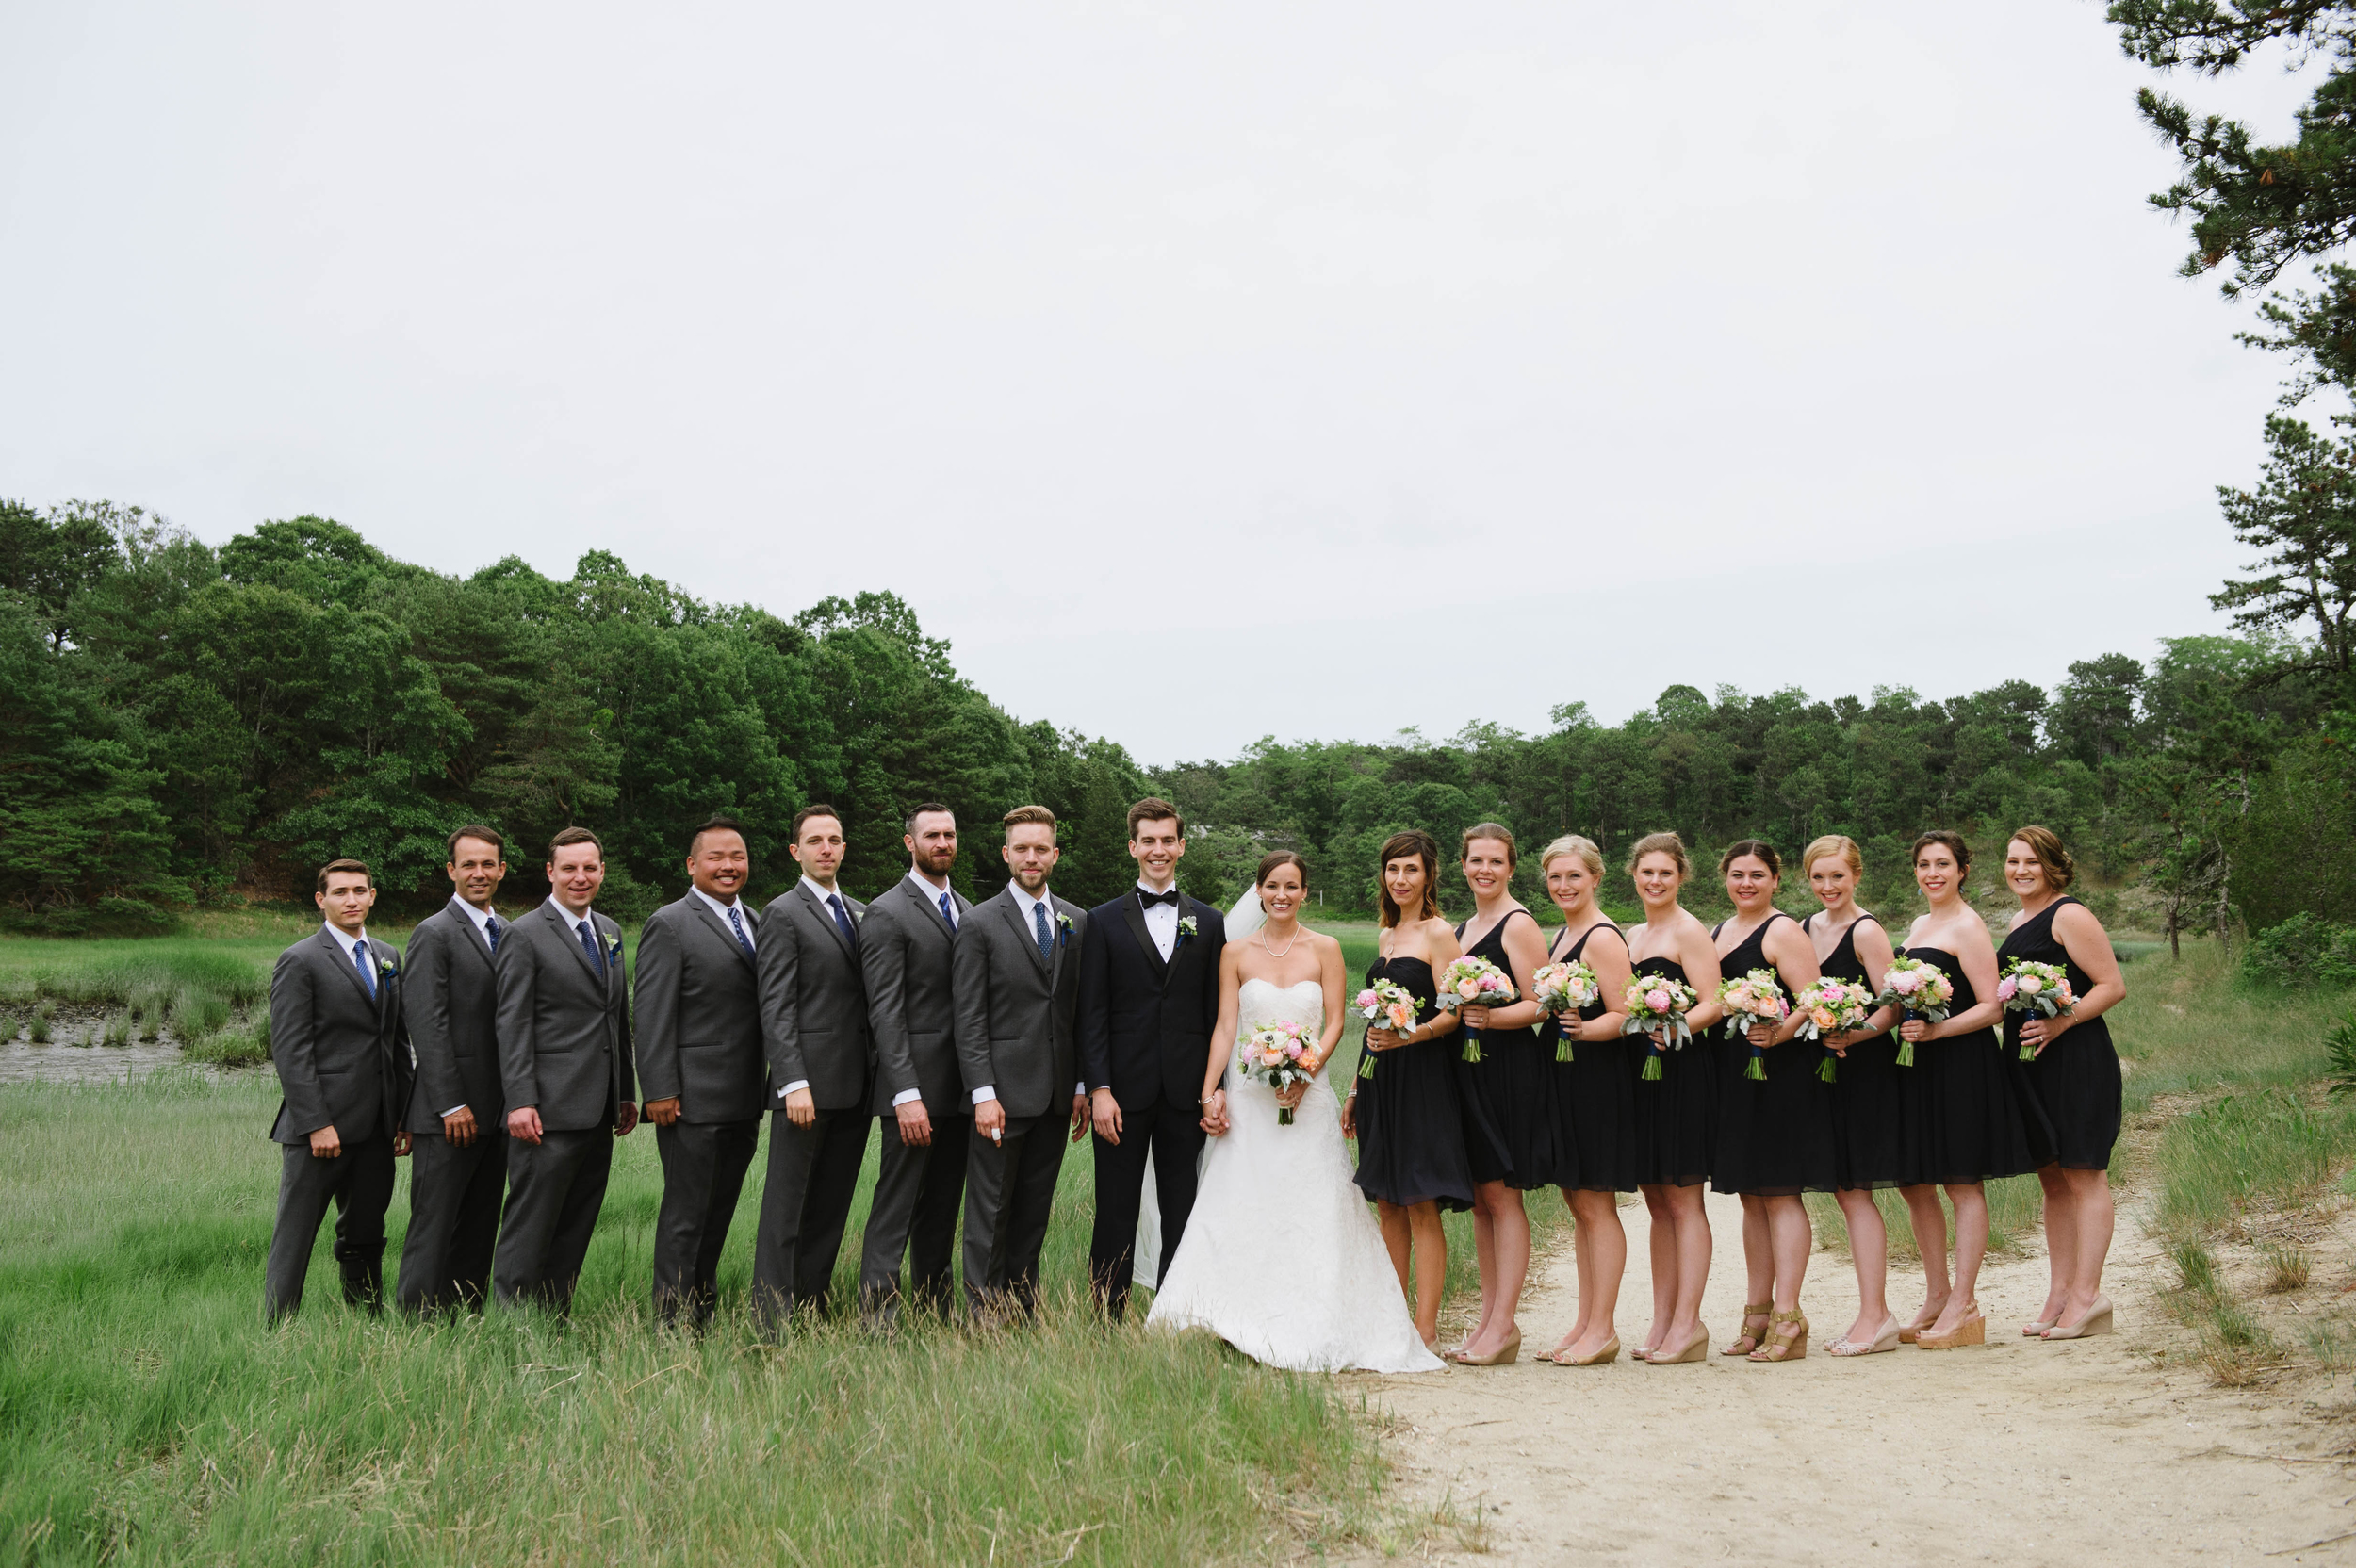 Holden_Inn_Wedding_Cape_Cod080.jpg